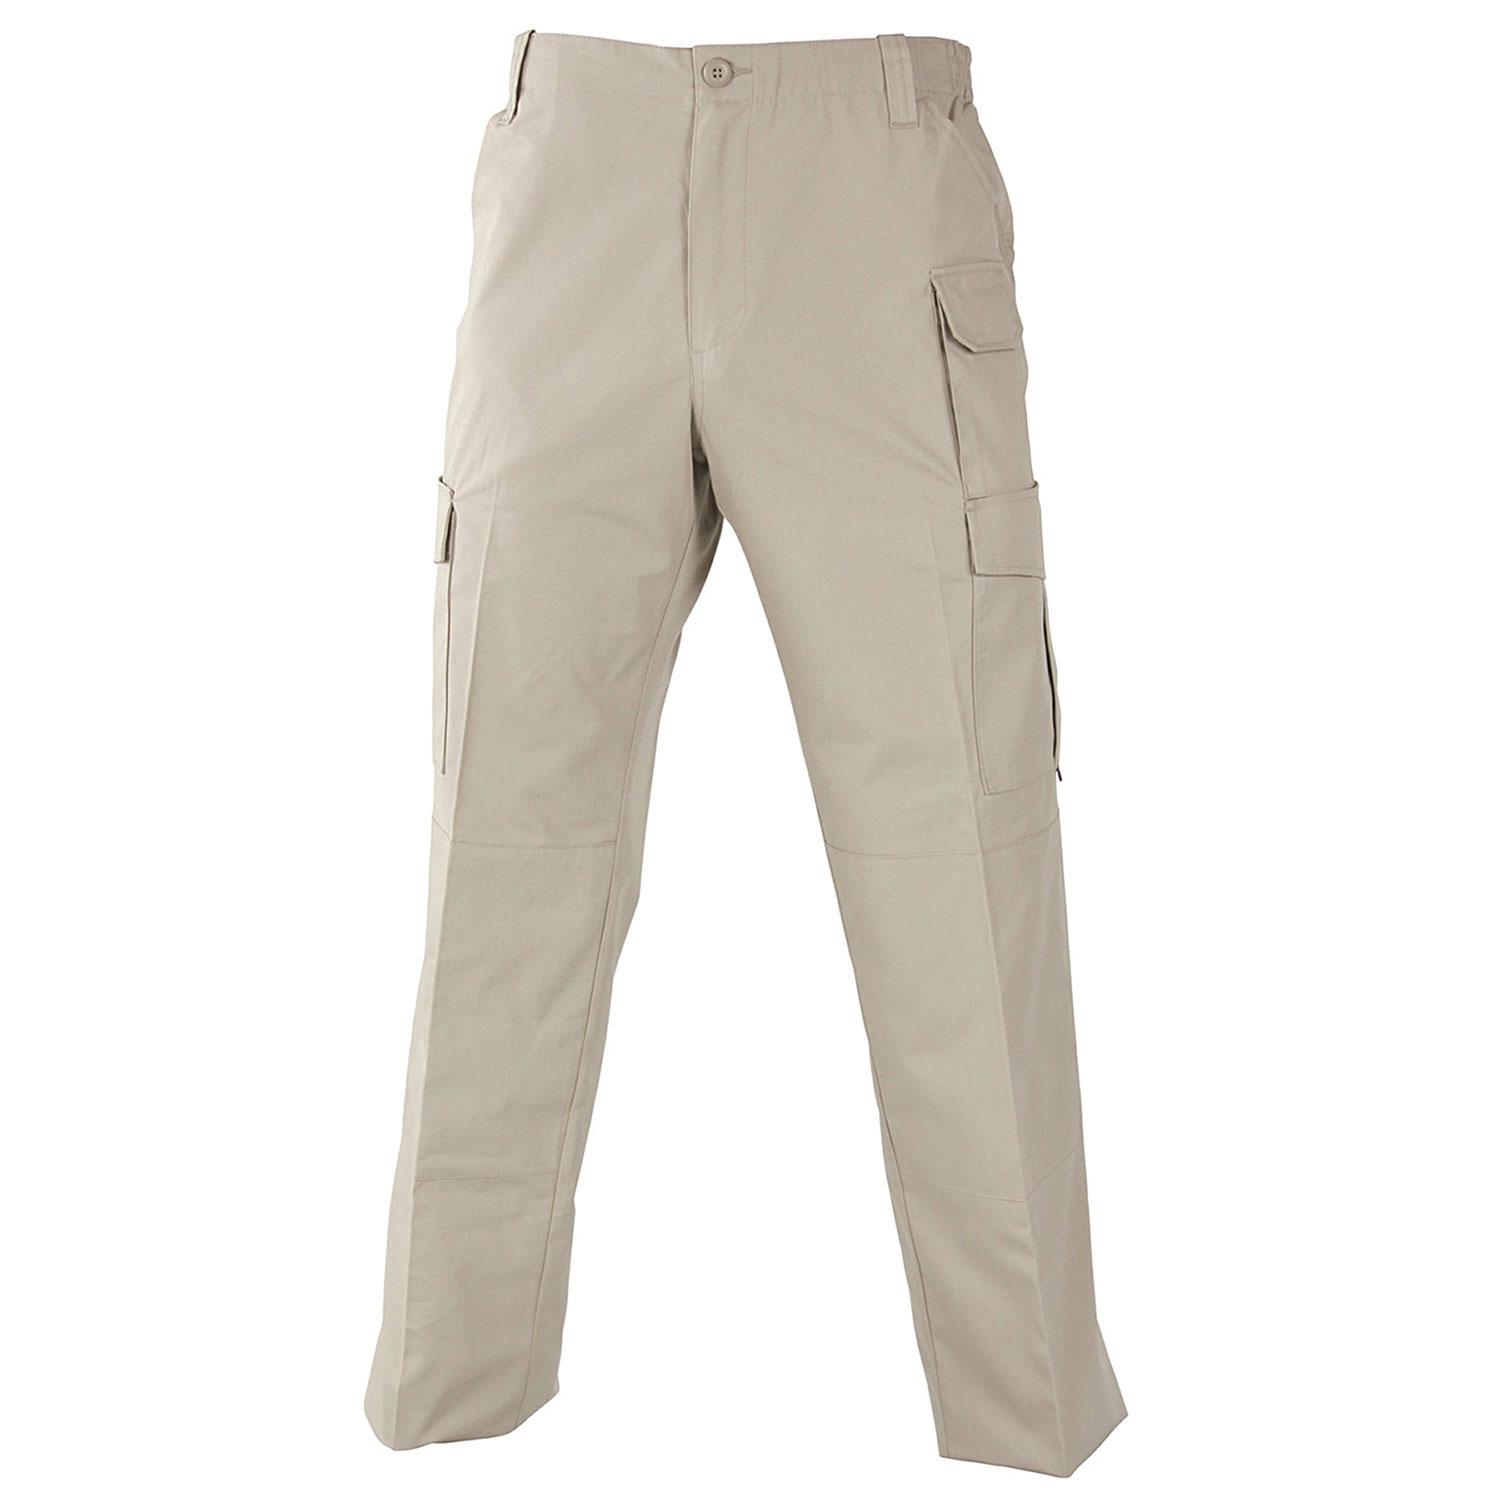 PROPPER Women's Uniform Trouser